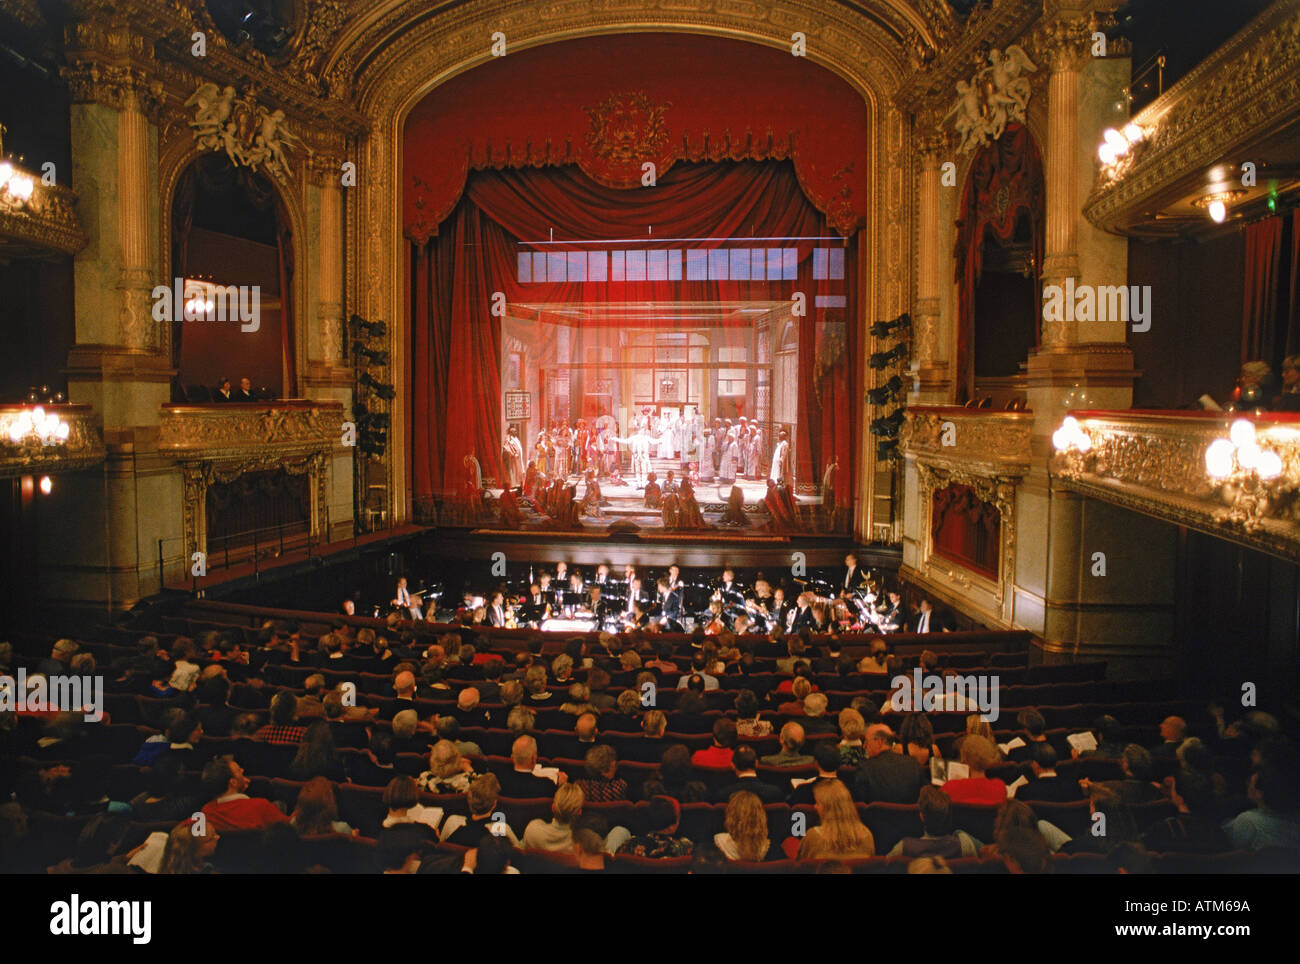 Audience and performing artists on stage at Stockholm Royal Opera House - Stock Image